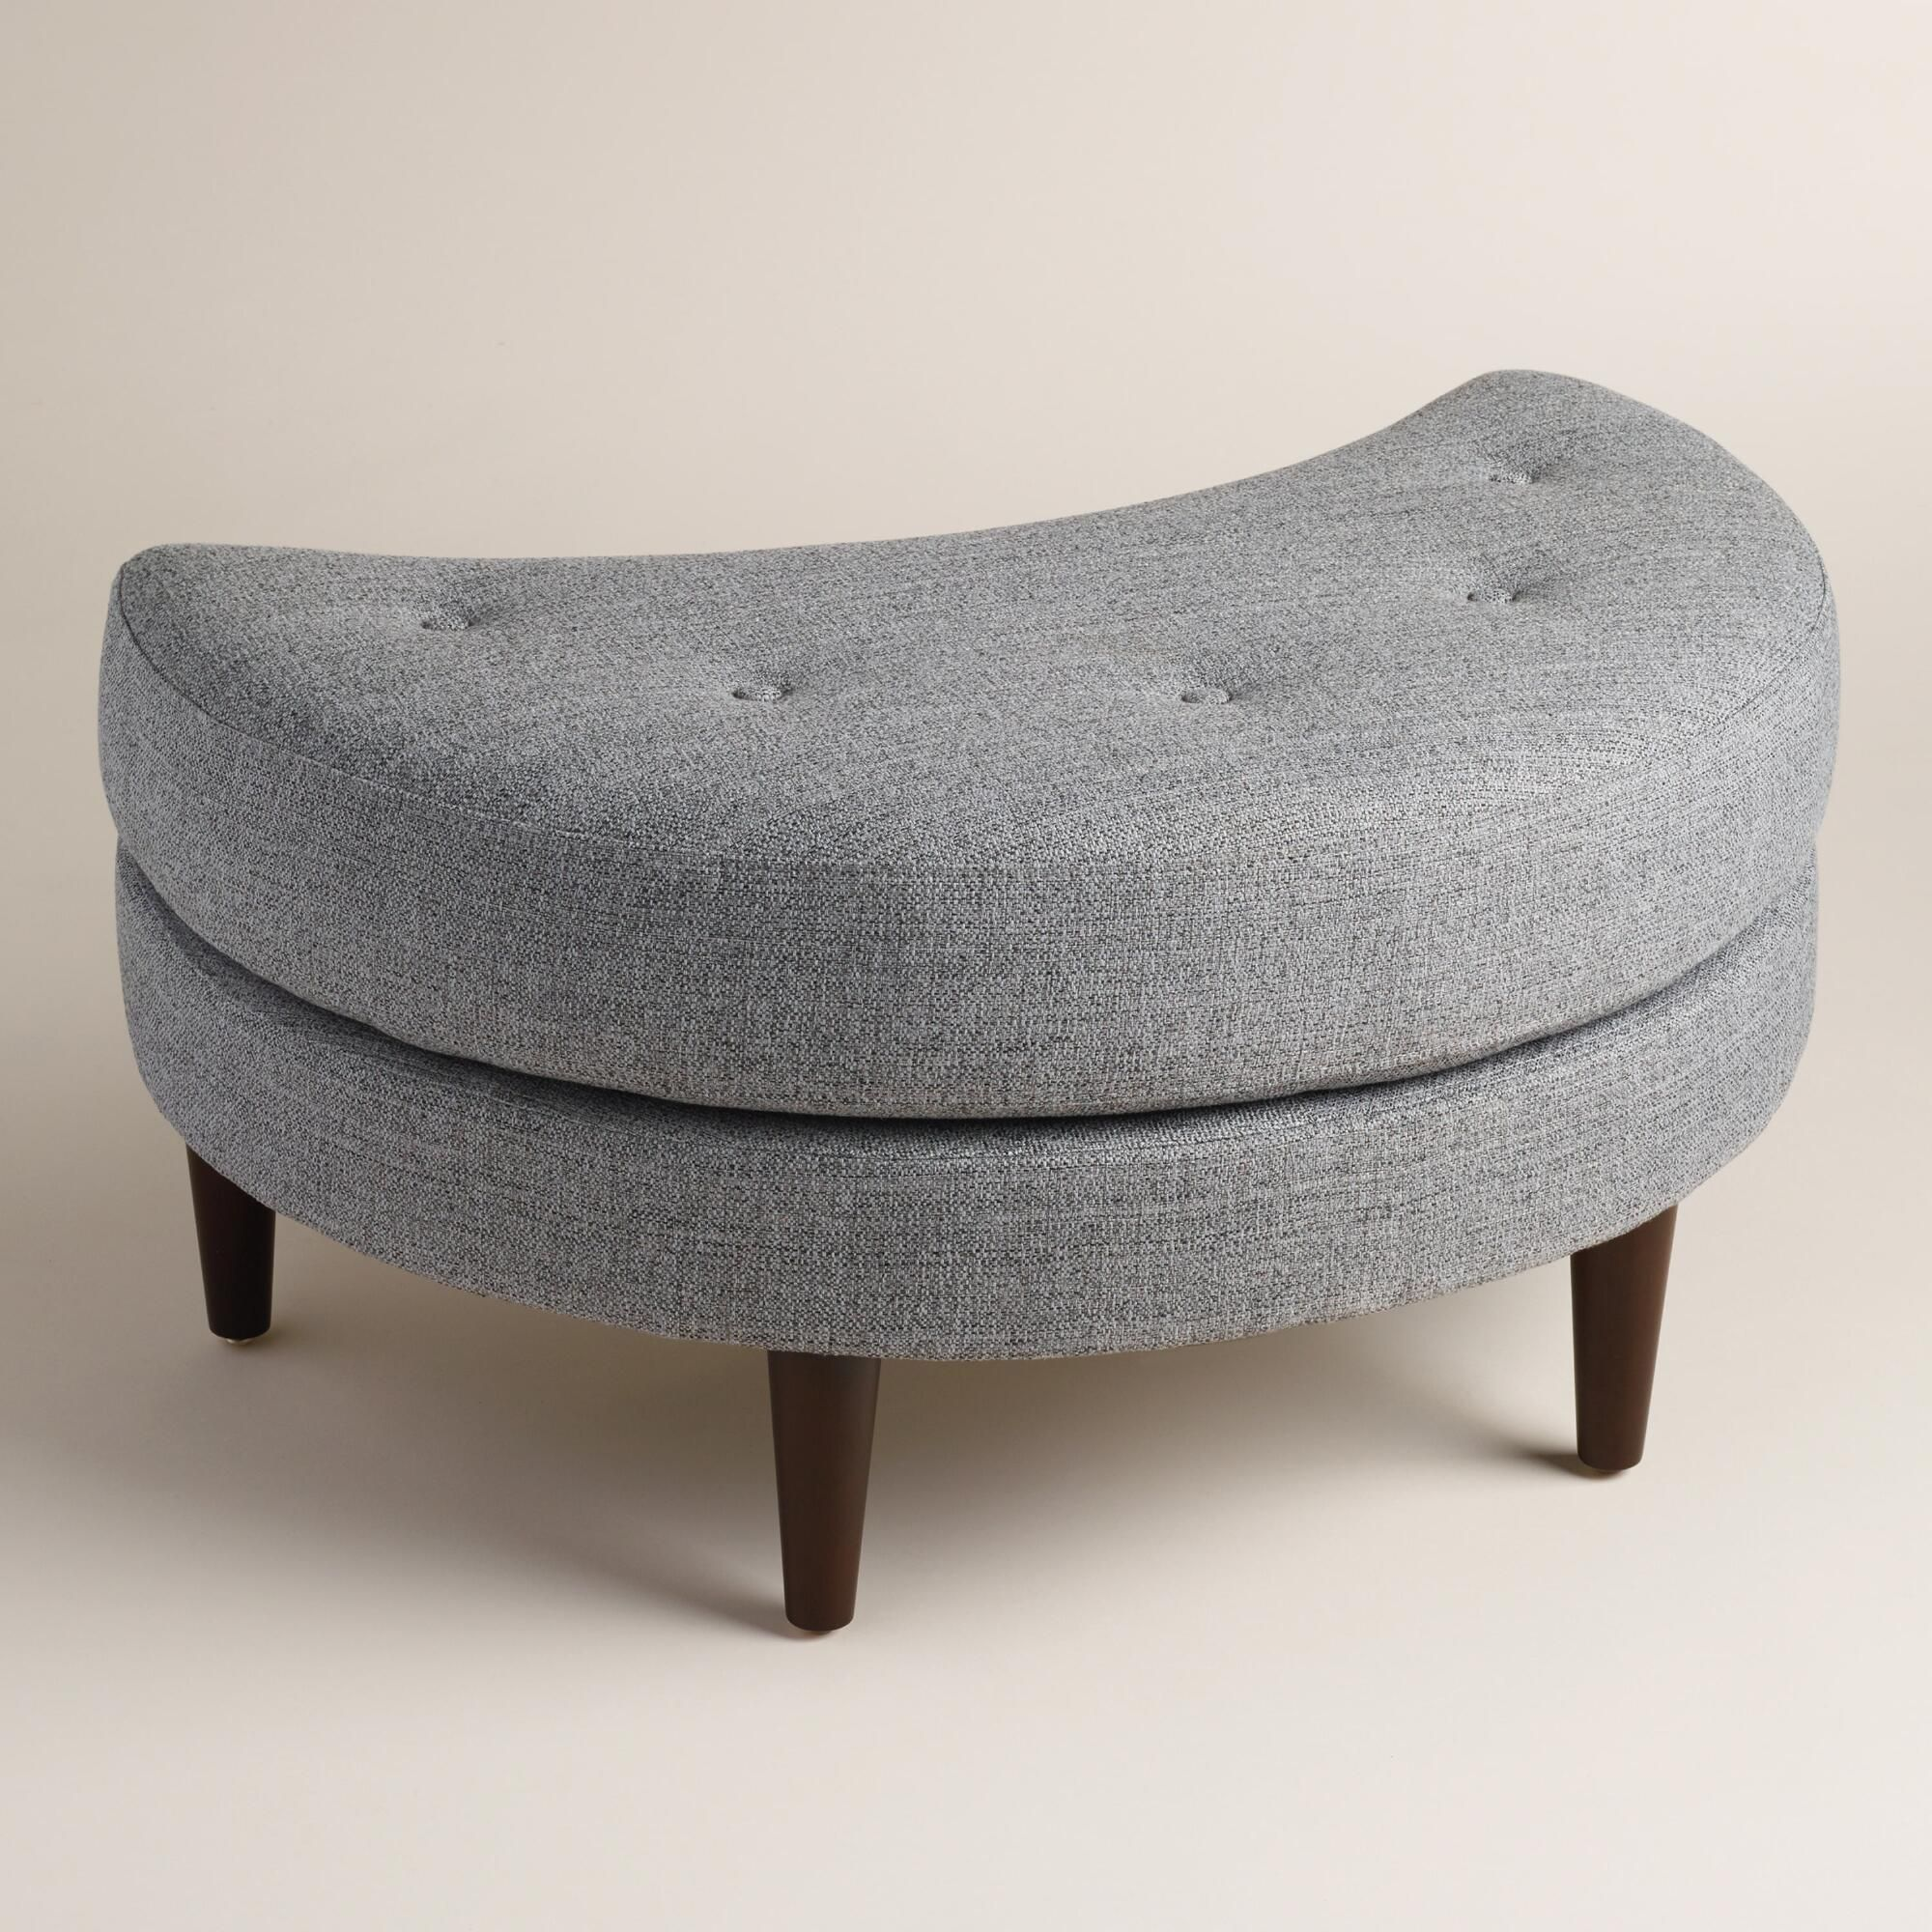 Make A Mid Century Style Statement With Our Ottoman